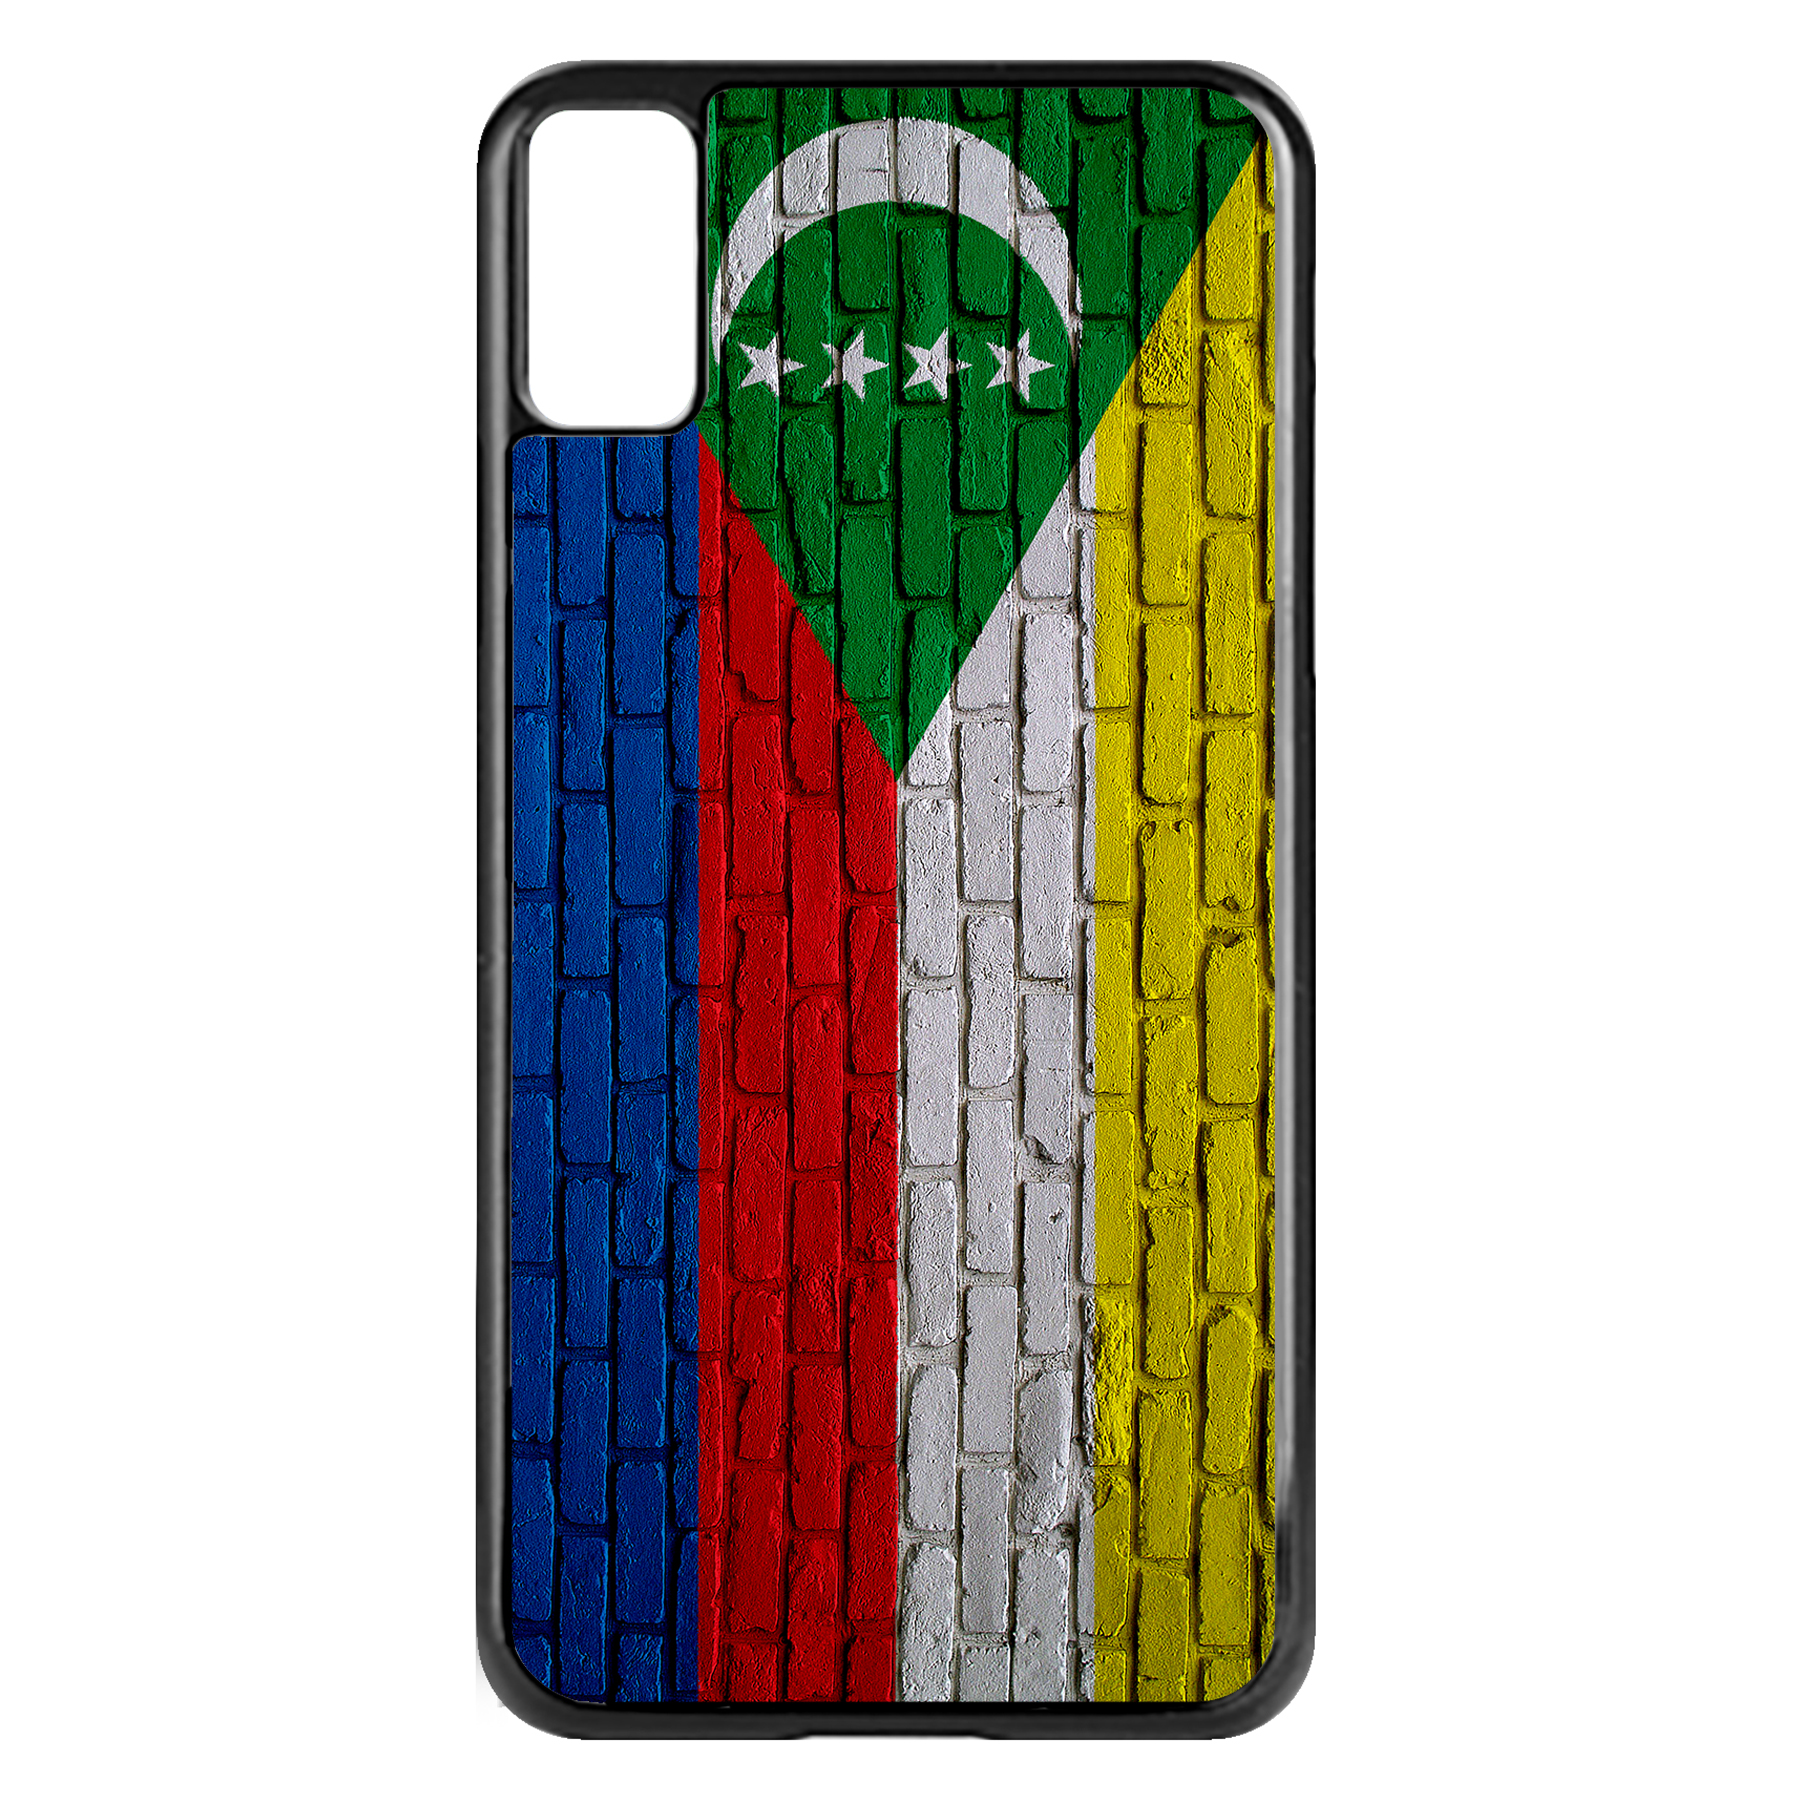 Apple-iPhone-Case-with-Flag-of-Comoros-Comorian-Many-Design-Options thumbnail 48